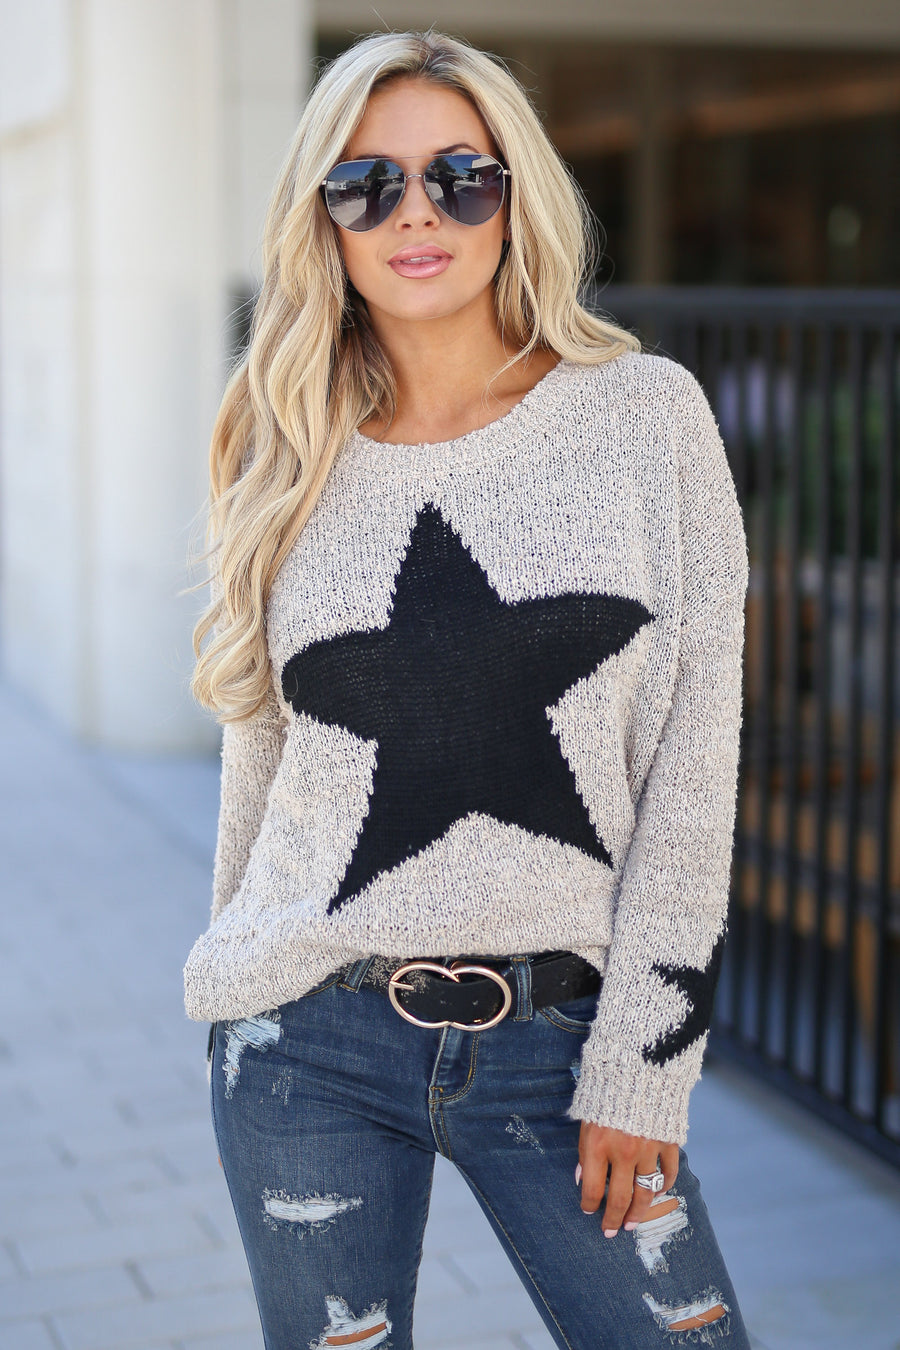 Beneath The Stars Sweater - Oatmeal taupe, black star, long sleeve top, trendy, cute, closet candy boutique 1